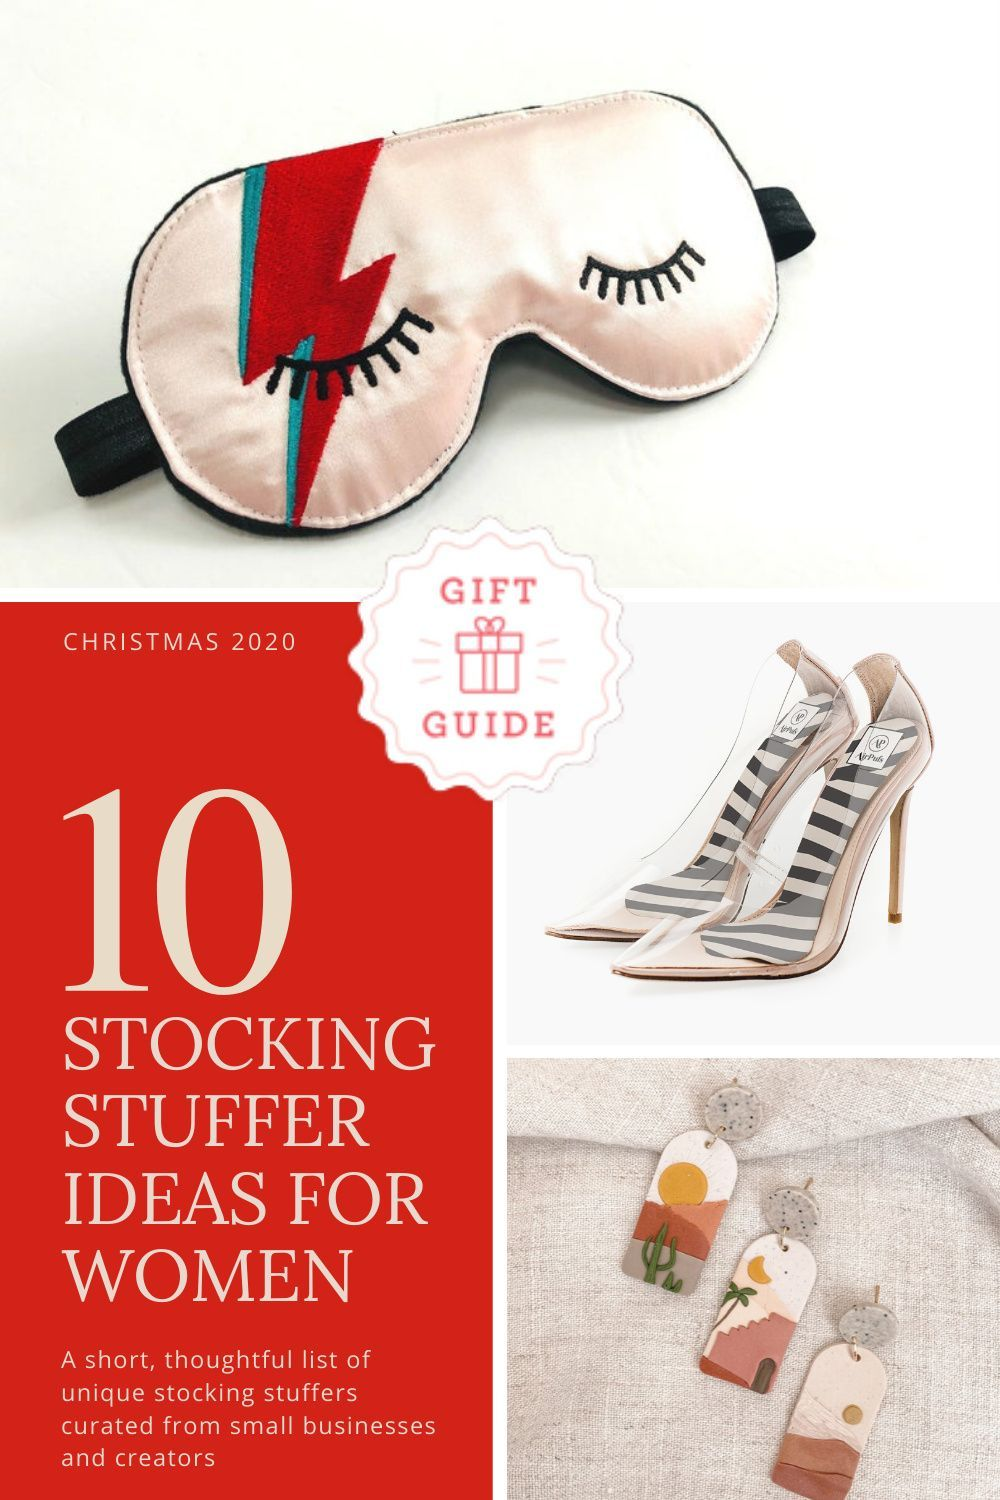 Curated from small businesses and independent makers, these unique stocking stuffer ideas for women will knock her socks off and be loved and used all year long. #Etsymakers #christmasgiftideas #stockingstuffersforwomen #stockingstuffersforwife #stockingstufferideas #uniquestockingstuffers